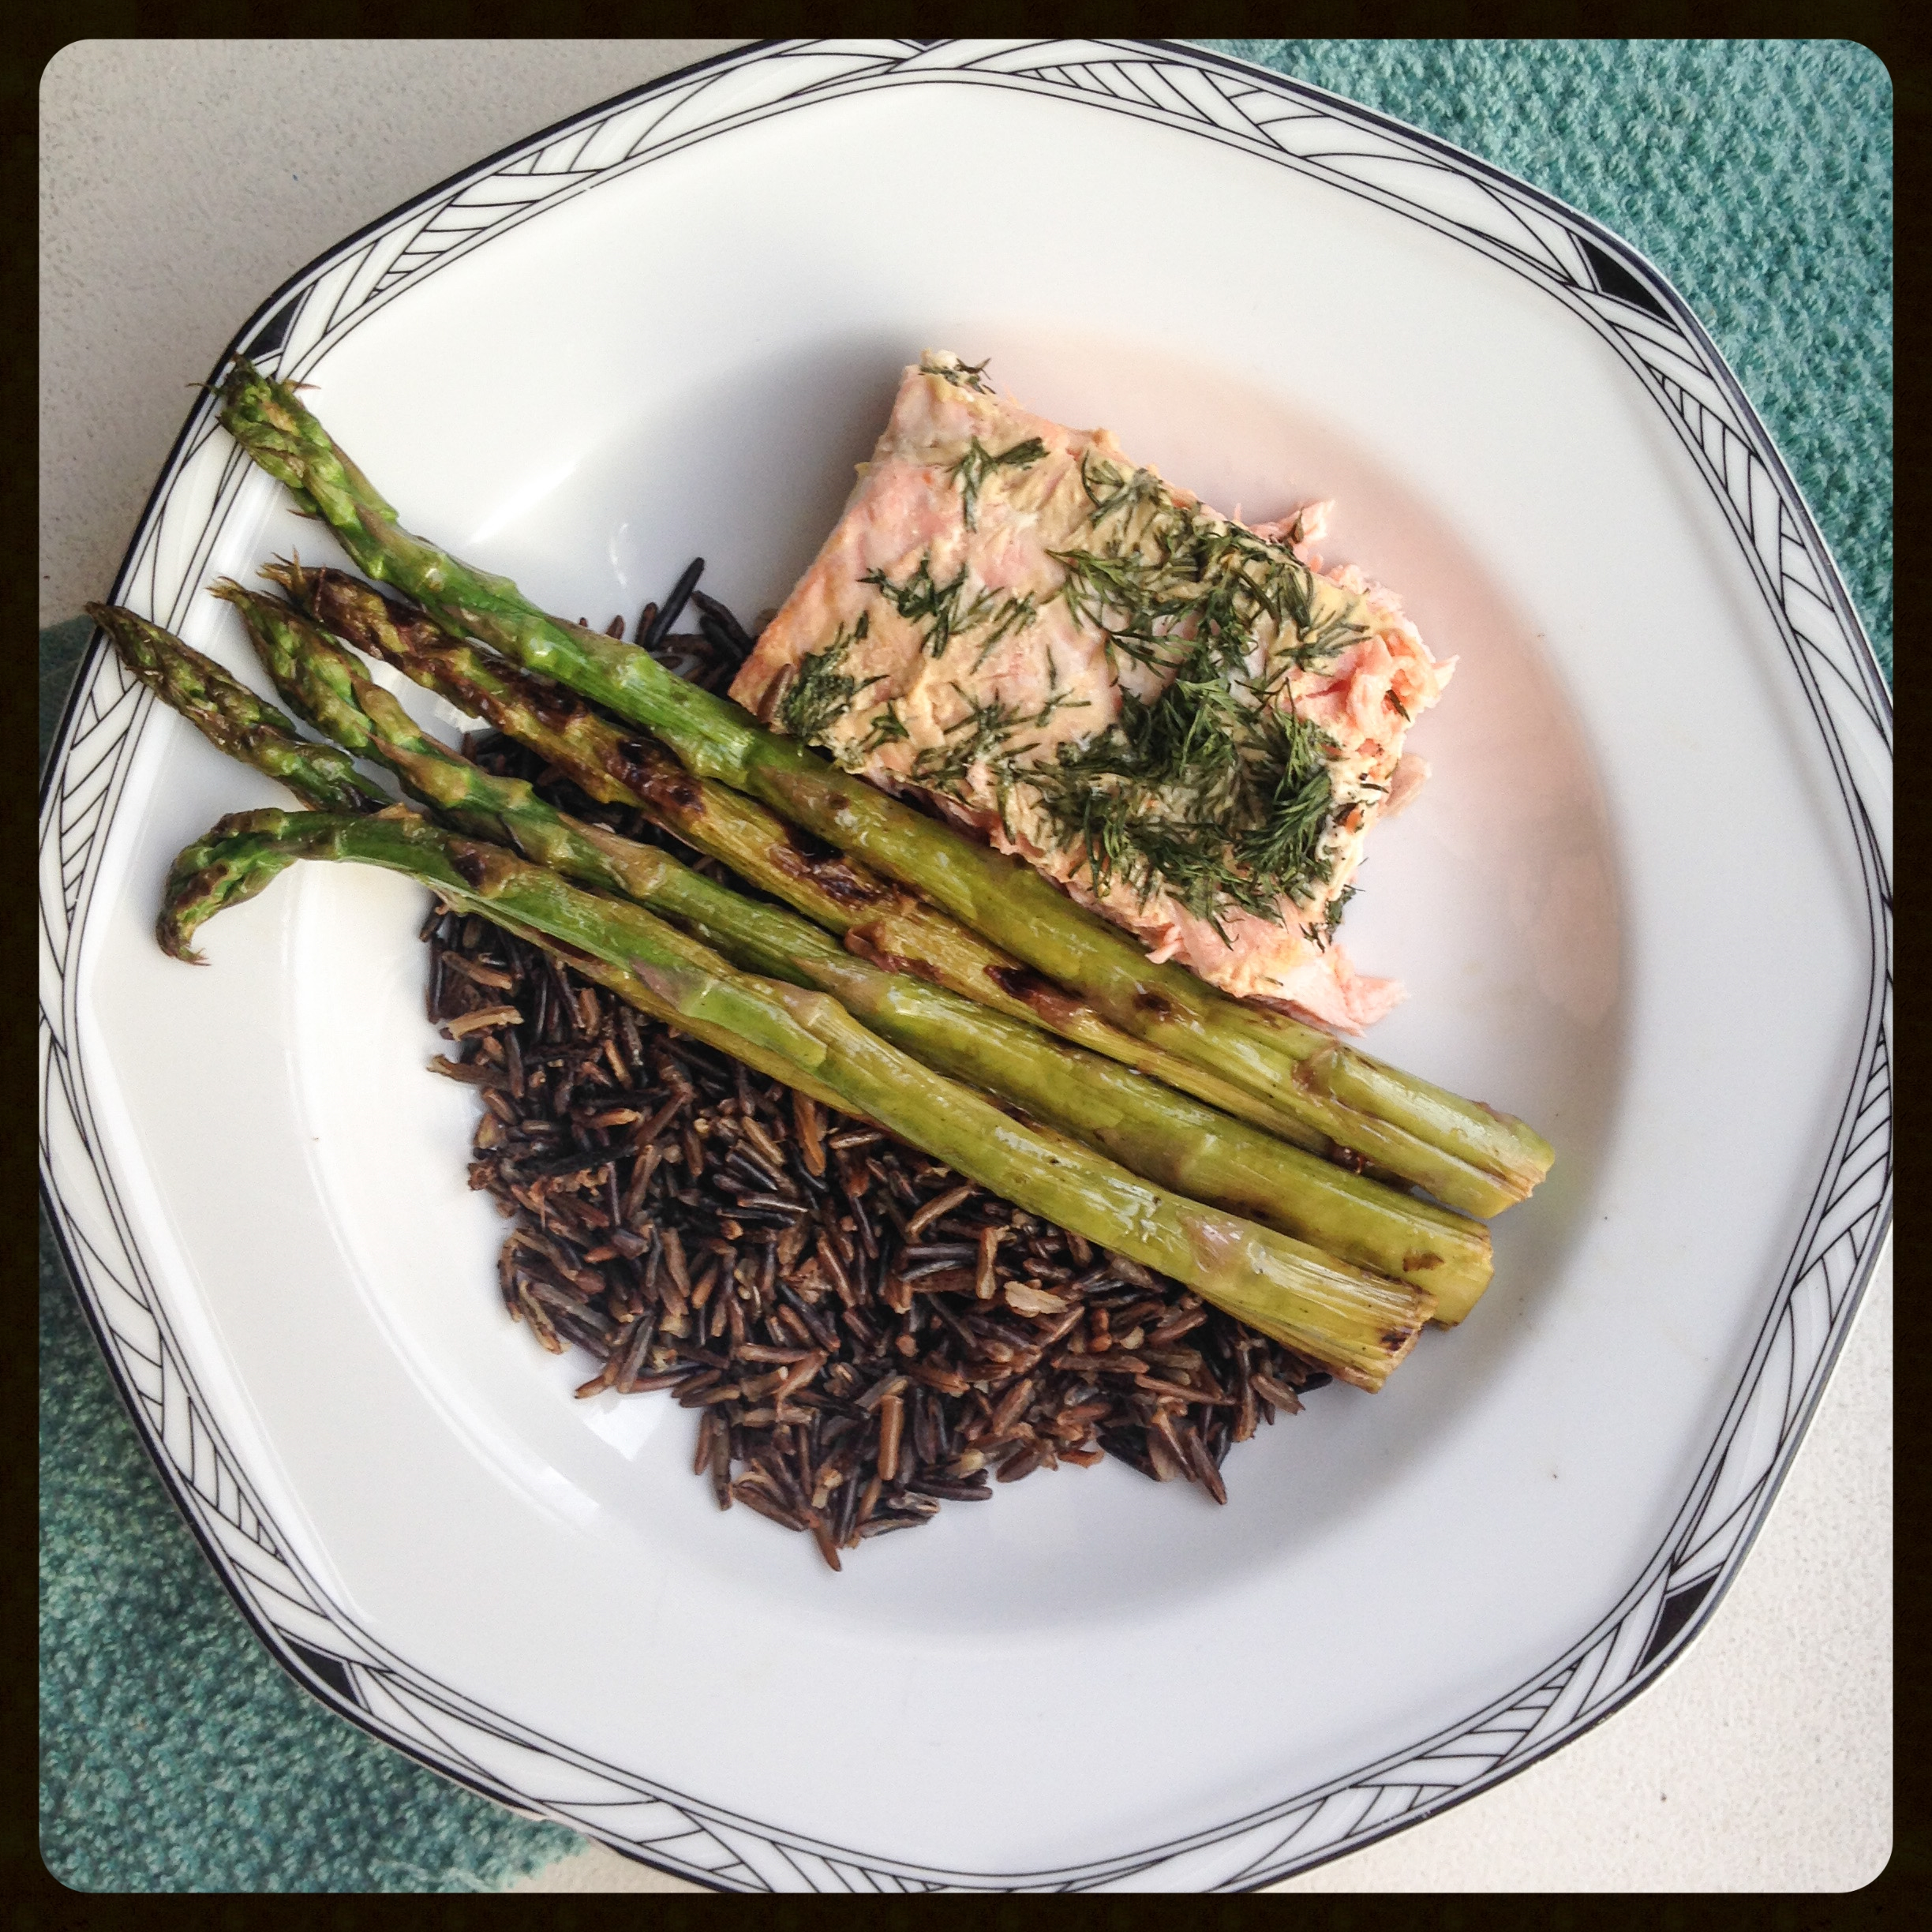 Served my Dijon-Dill salmon with wild rice and grilled asparagus, it was the perfect dinner combo!